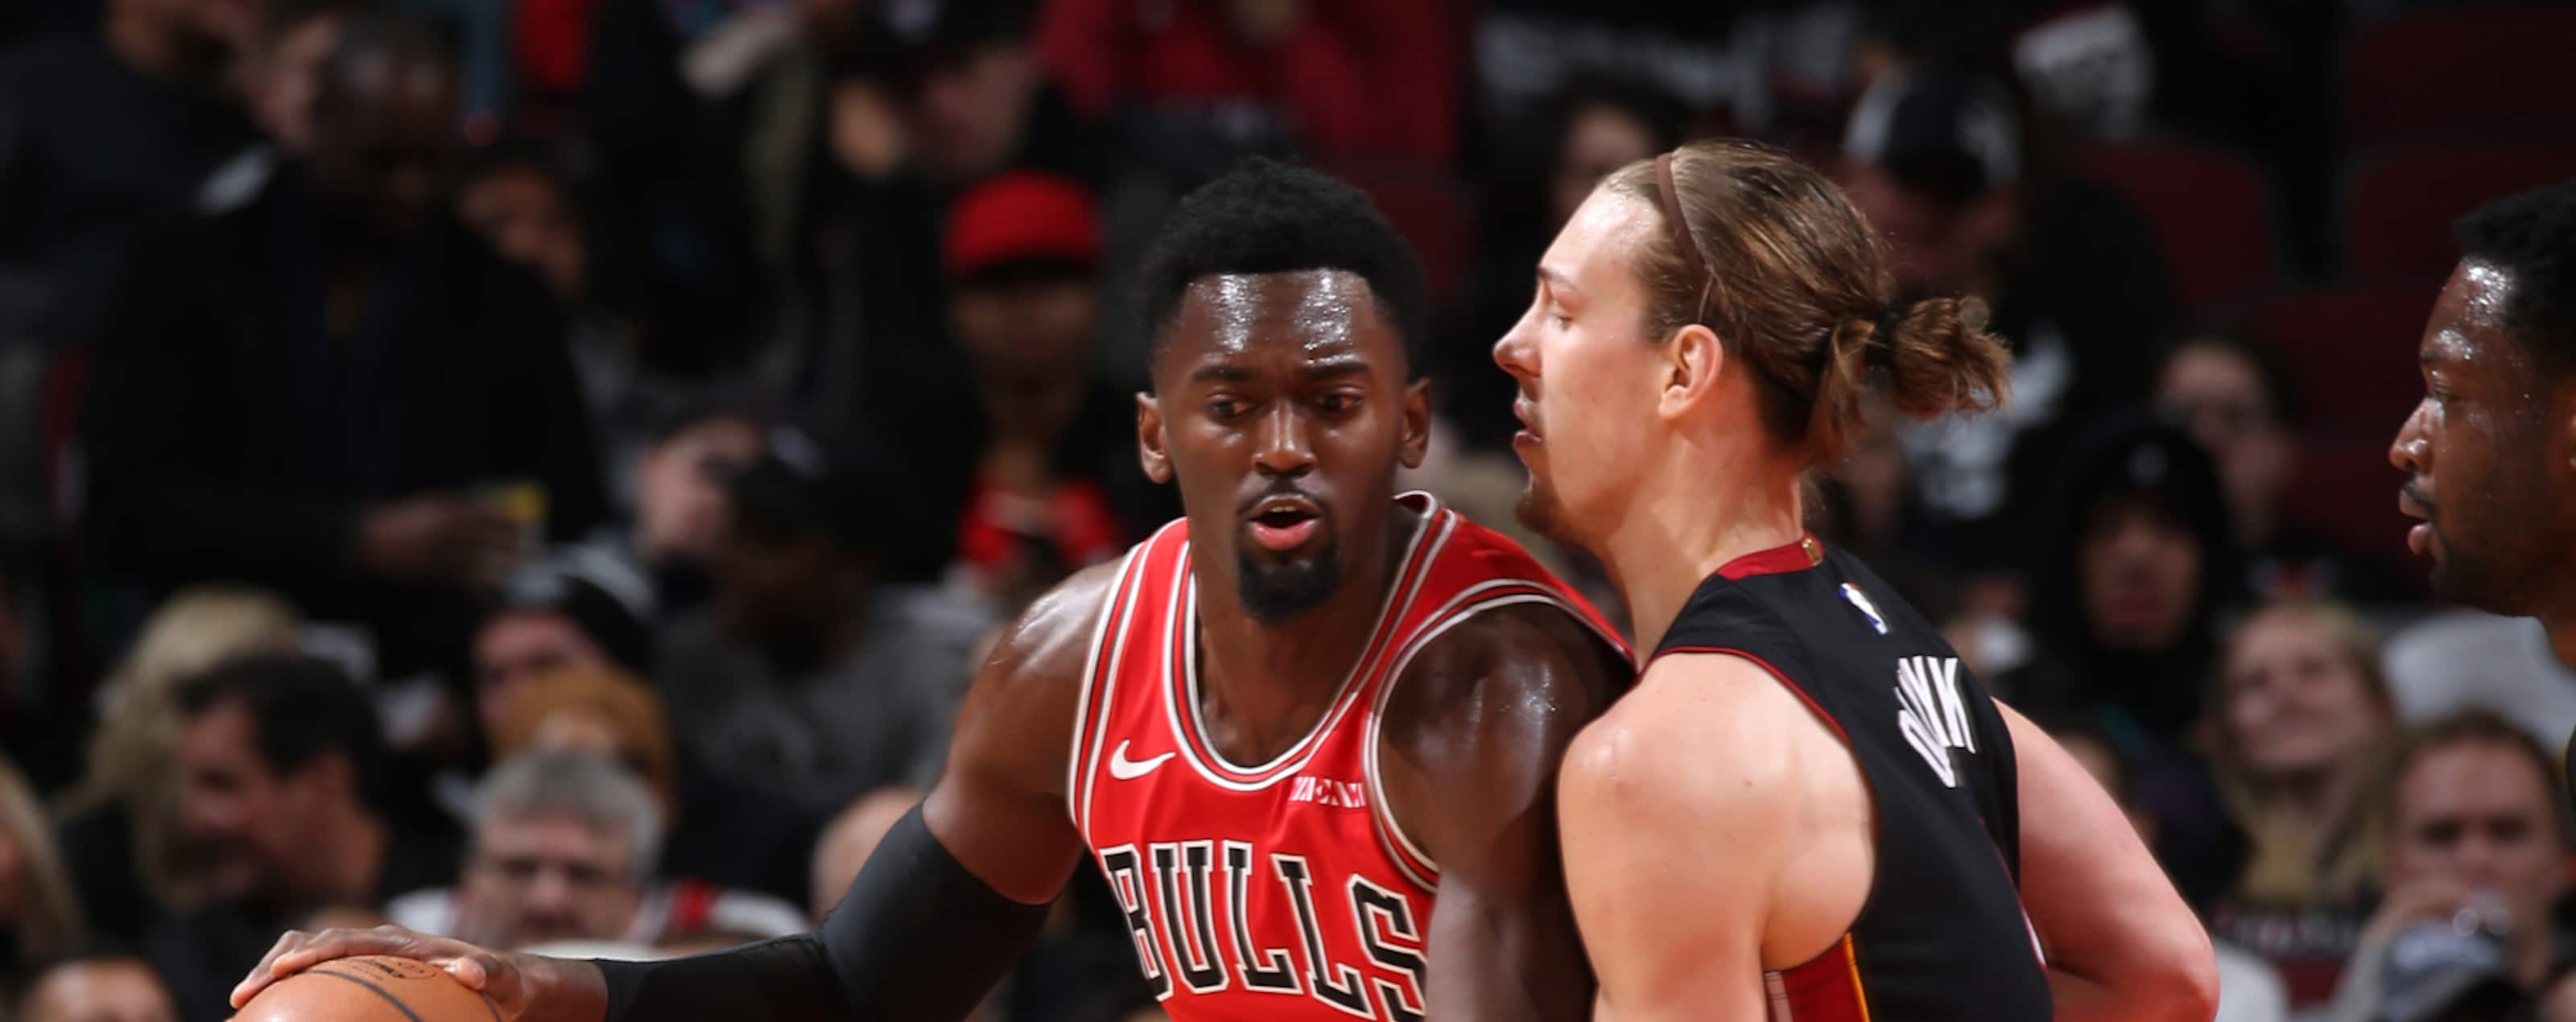 Bobby Portis #5 of the Chicago Bulls posts up on Kelly Olynyk #9 of the Miami Heat on January 19, 2019 at the United Center in Chicago, Illinois.